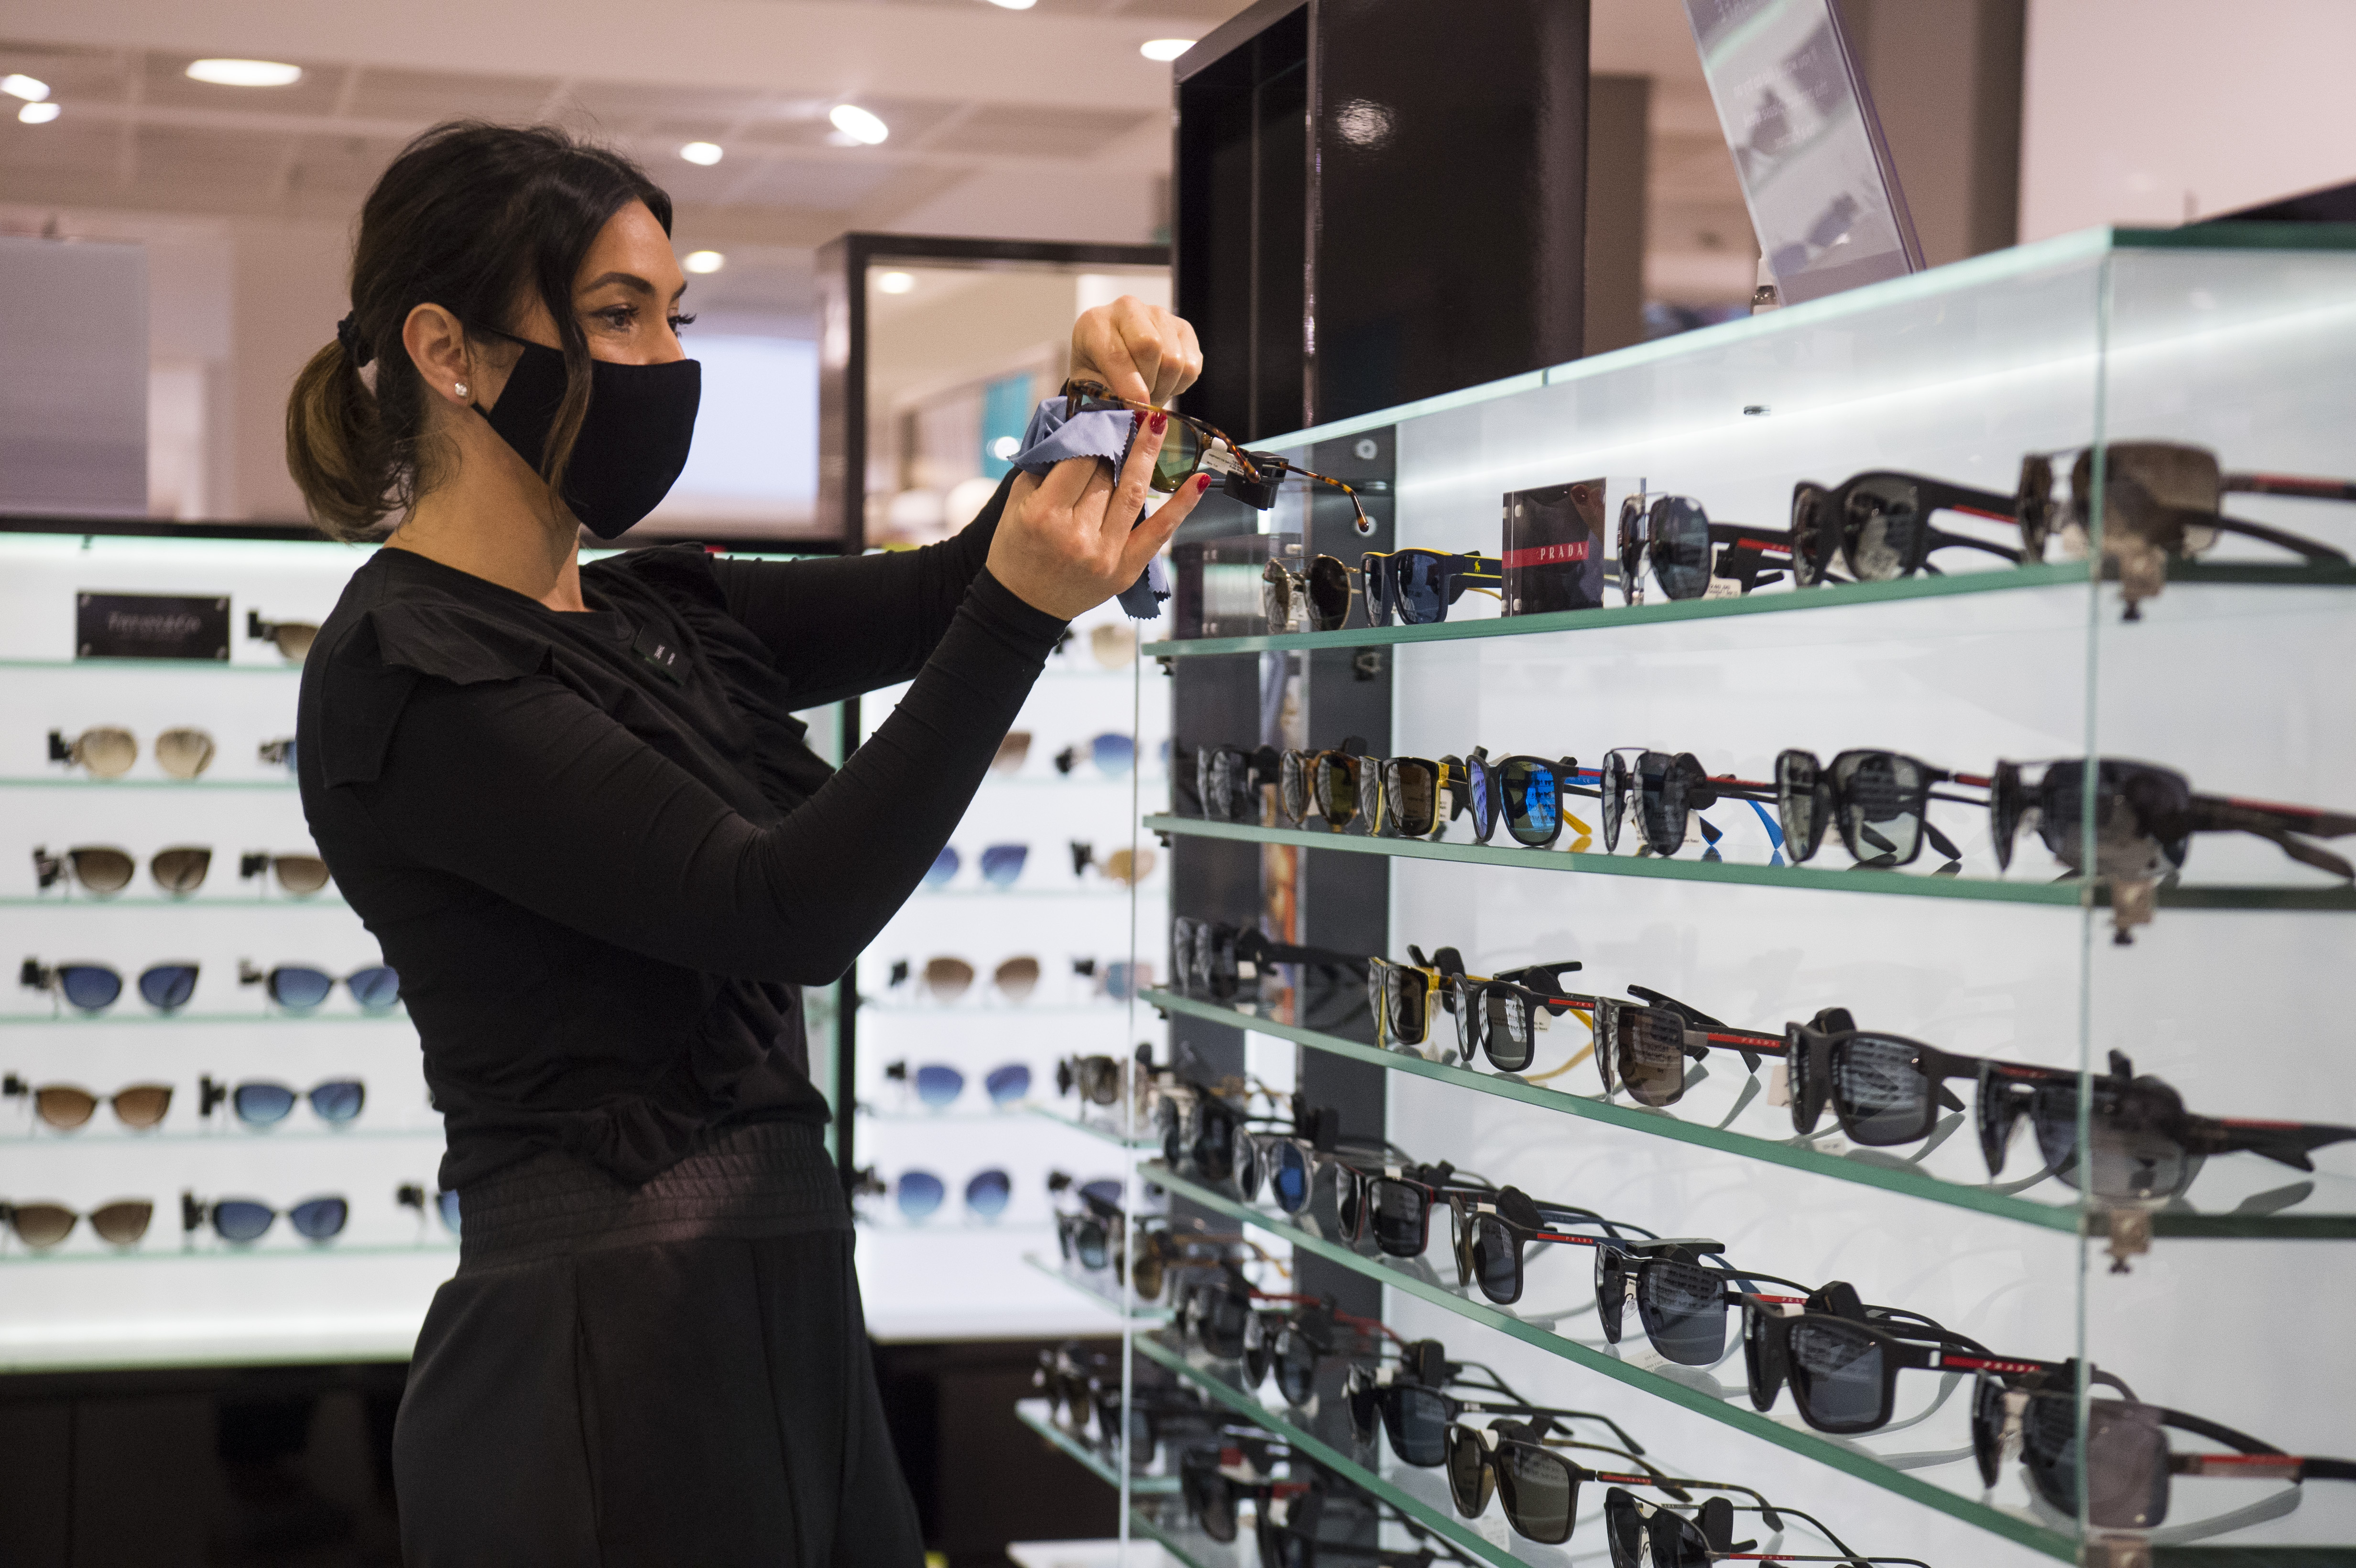 <p>A John Lewis partner polishes sunglasses at the Peter Jones store in Sloane Square, Chelsea, London, as they prepare for reopening on April 12 when further lockdown restrictions are eased in England. Picture date: Friday April 9, 2021.</p>